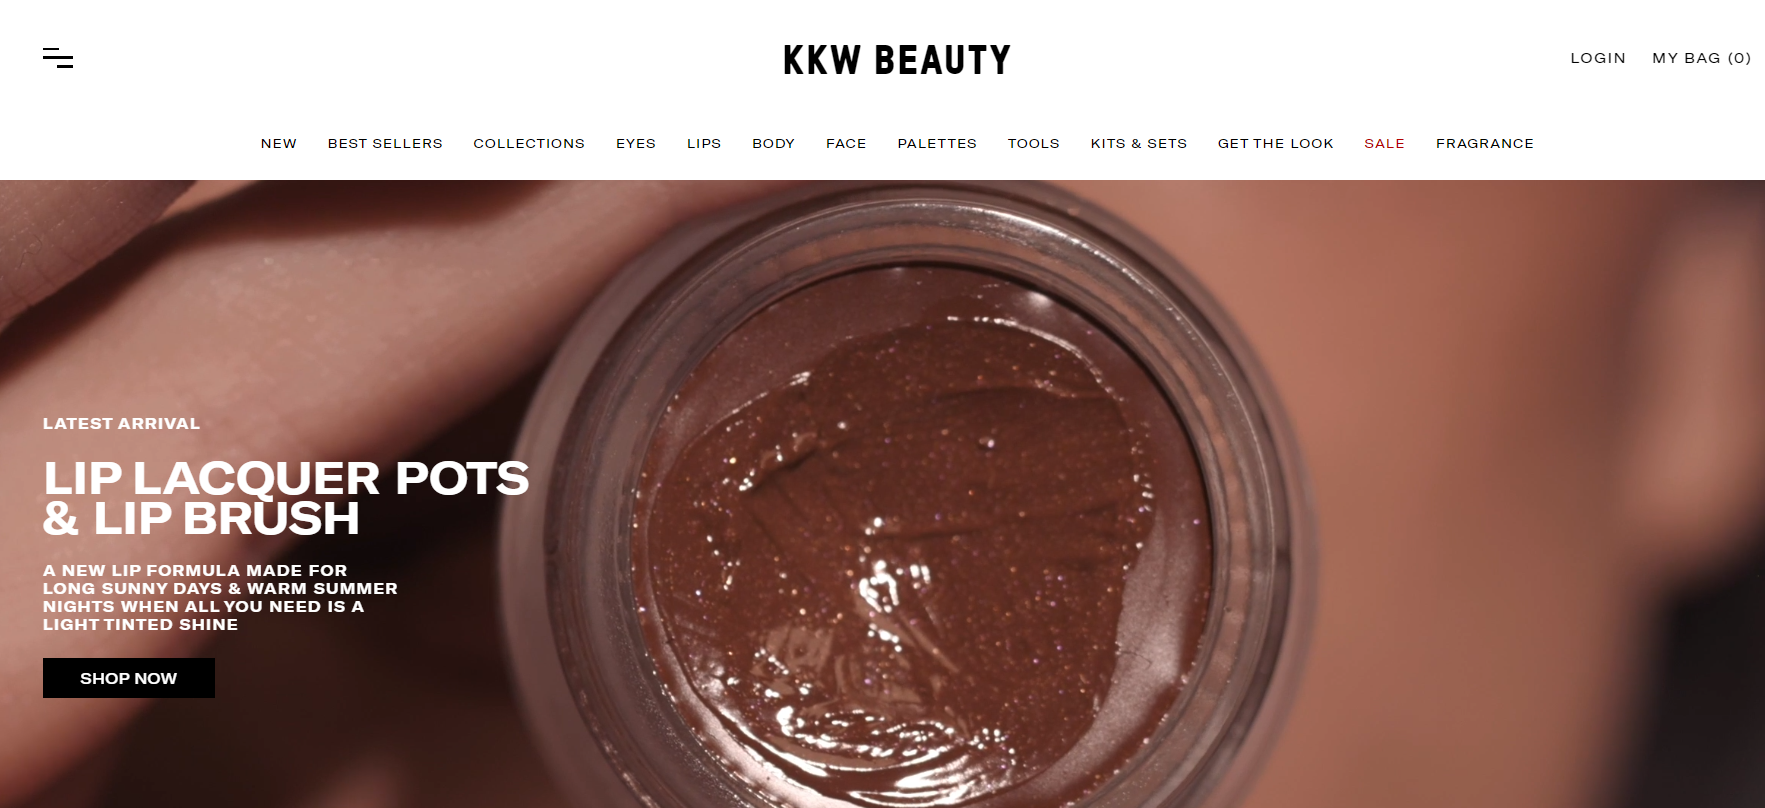 shopify dropshipping store examples - kkw beauty